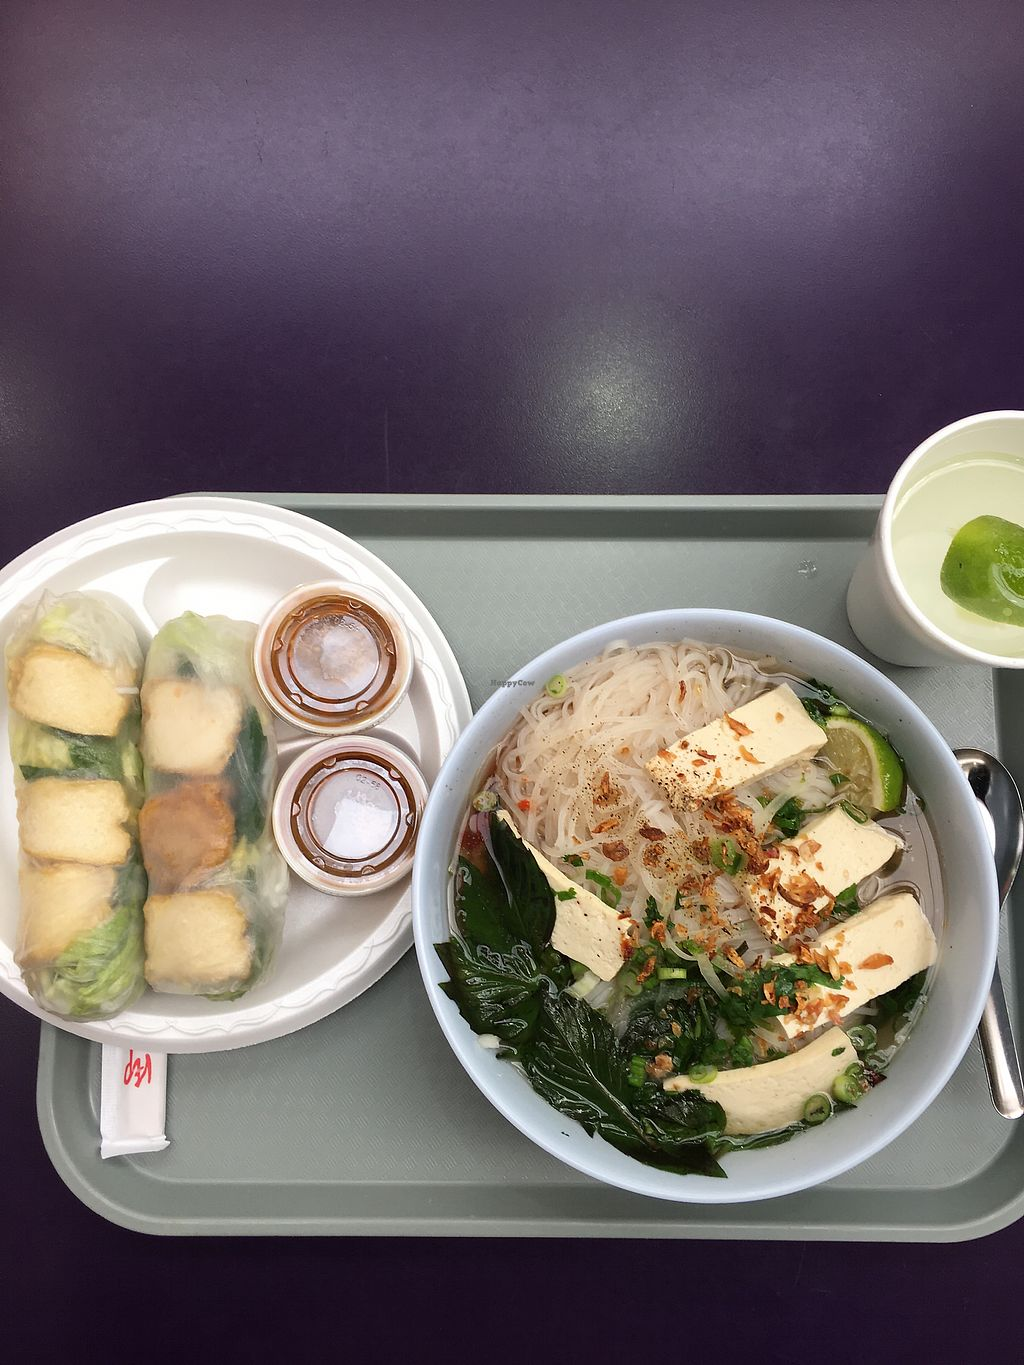 """Photo of Vietnam Cafe  by <a href=""""/members/profile/ccampbel"""">ccampbel</a> <br/>Vegan pho and tofu spring rolls <br/> January 7, 2018  - <a href='/contact/abuse/image/108520/344043'>Report</a>"""